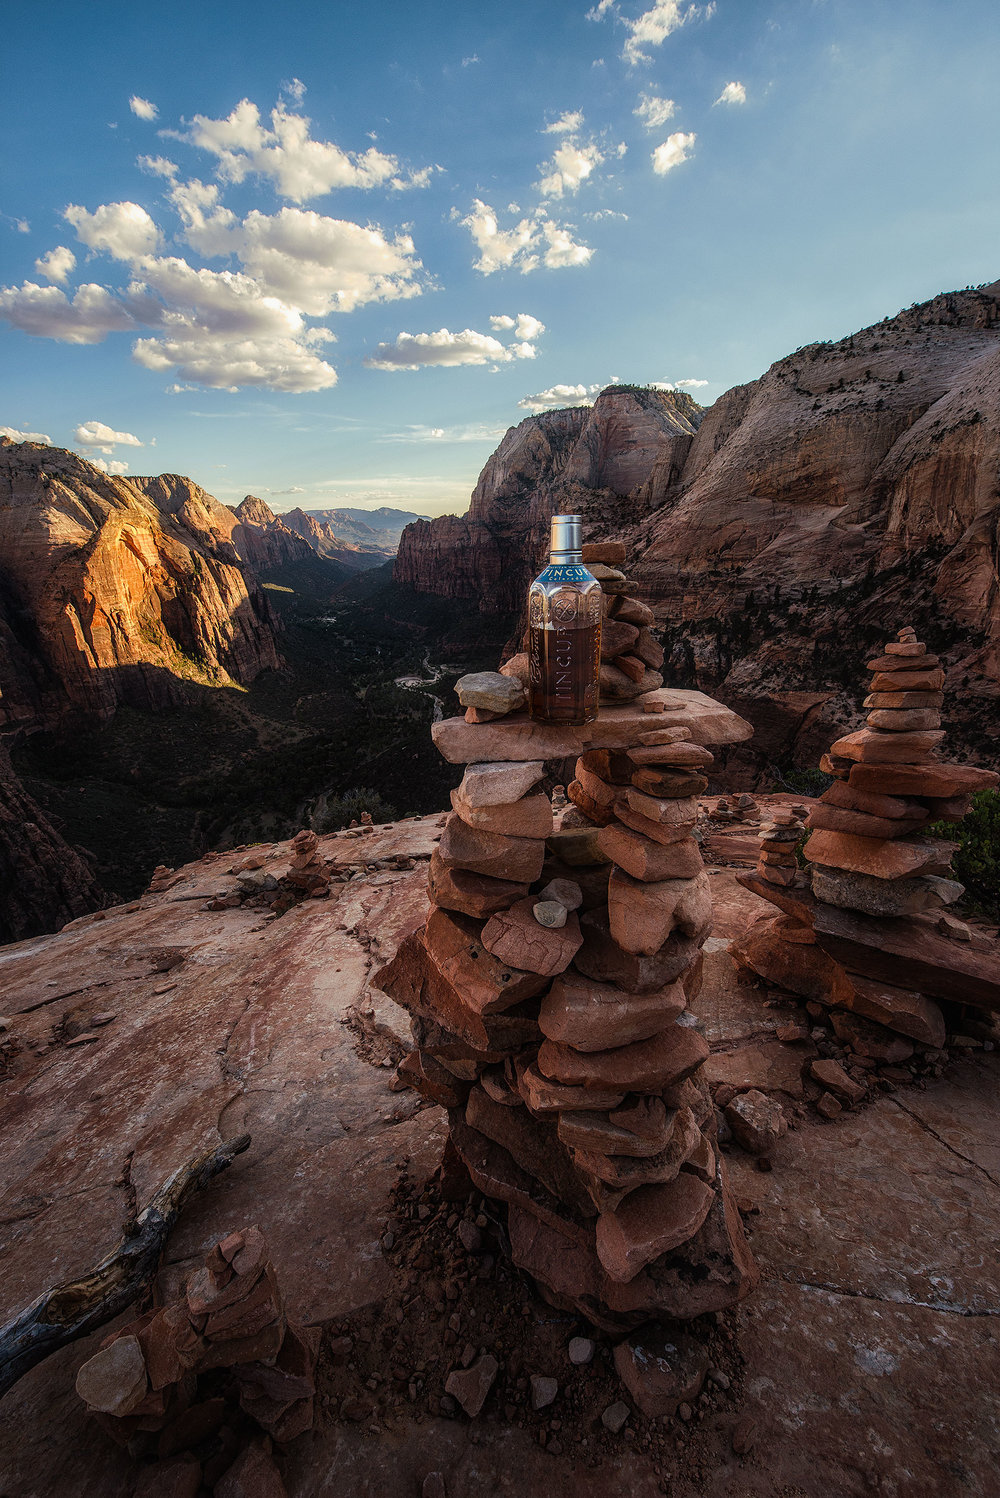 austin-trigg-whiskey-lifestyle-zion-product-Carin-Angles-Landing-TINCUP-bottle-valley.jpg